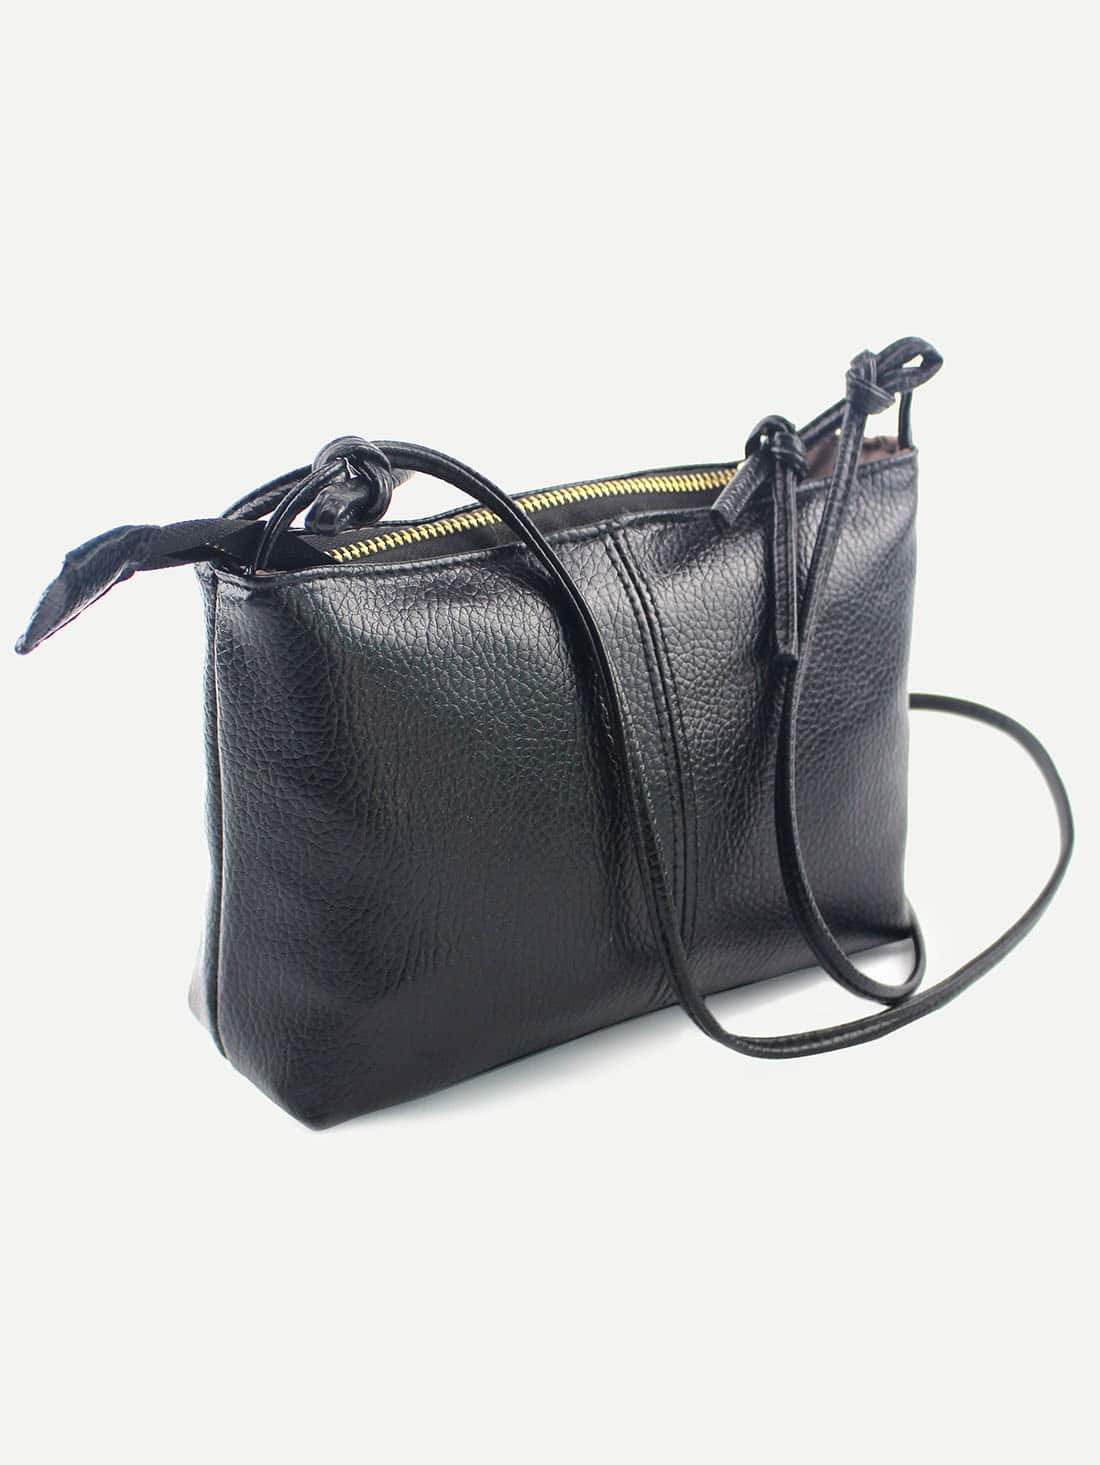 Keep your hands free our selection of crossbody bags. The convertible bags can be worn as a crossbody but also as shoulder bags.